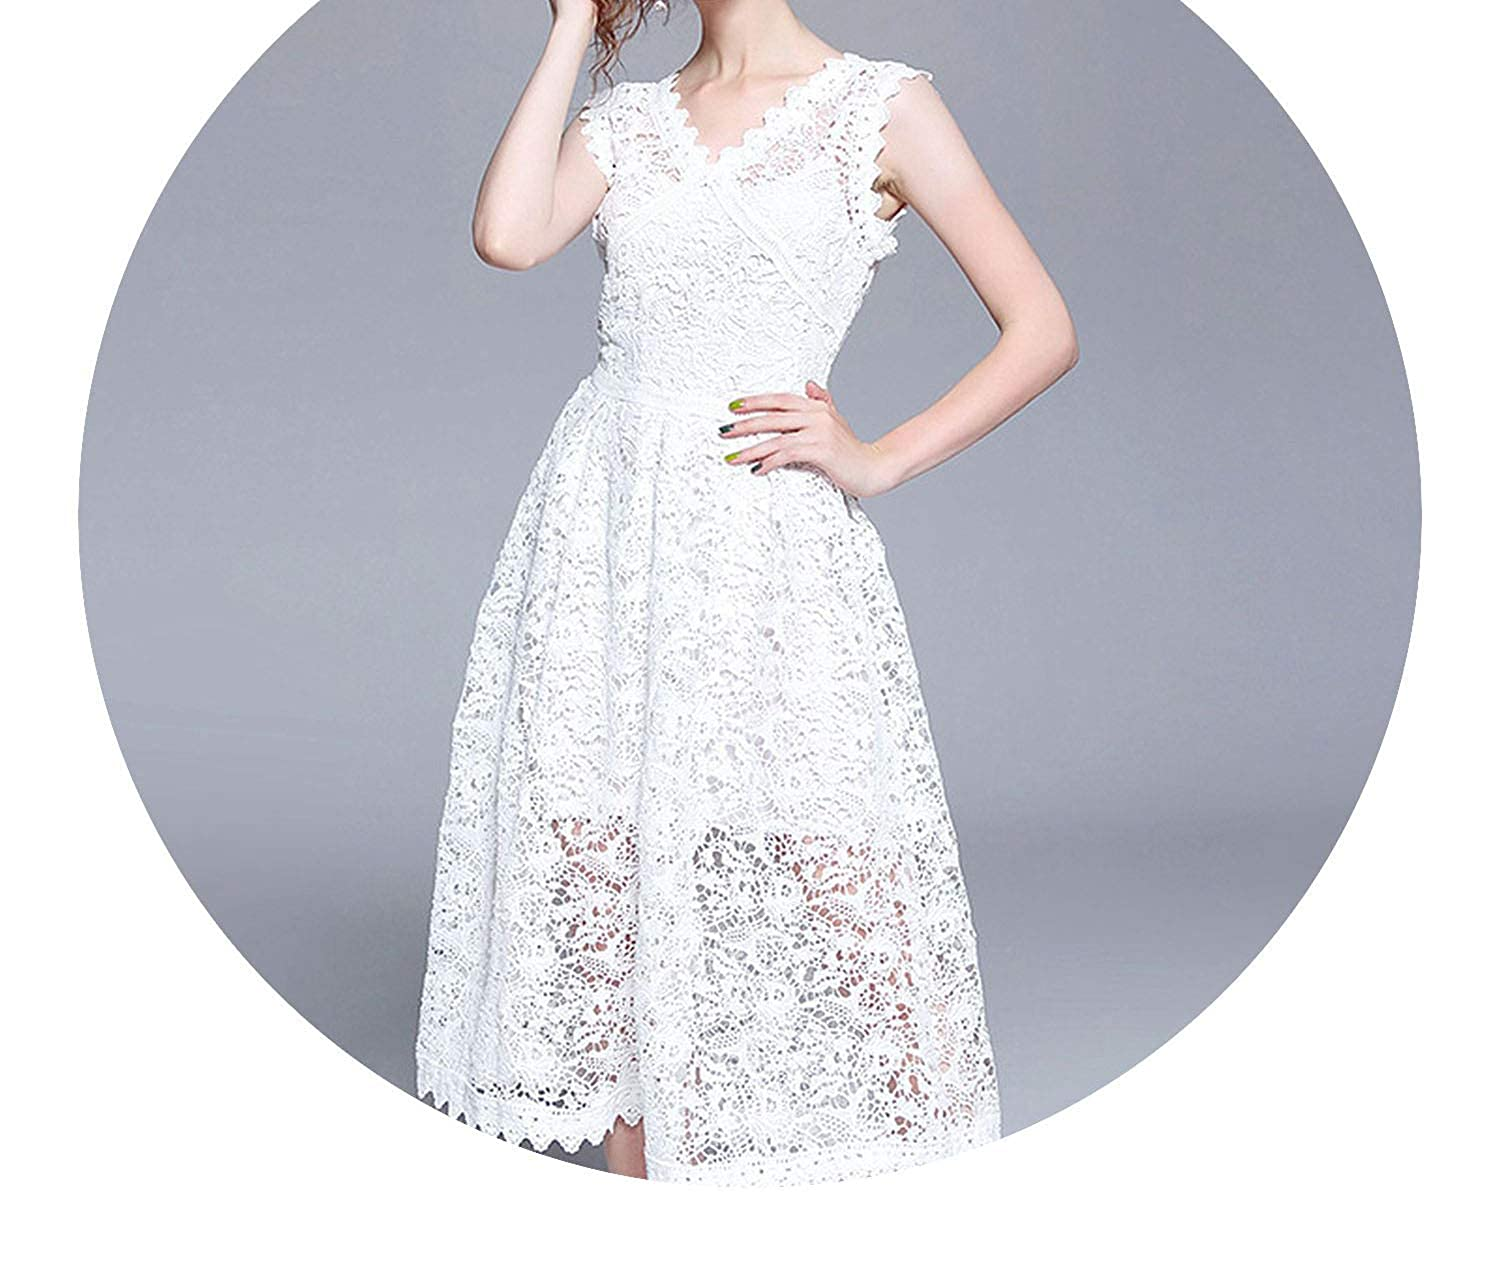 better-caress-mesh perspective dress Solid White Lace Tank Sleeveless V Neck Two-Pieces Dress Elegant Vestidos Cheap Clothes